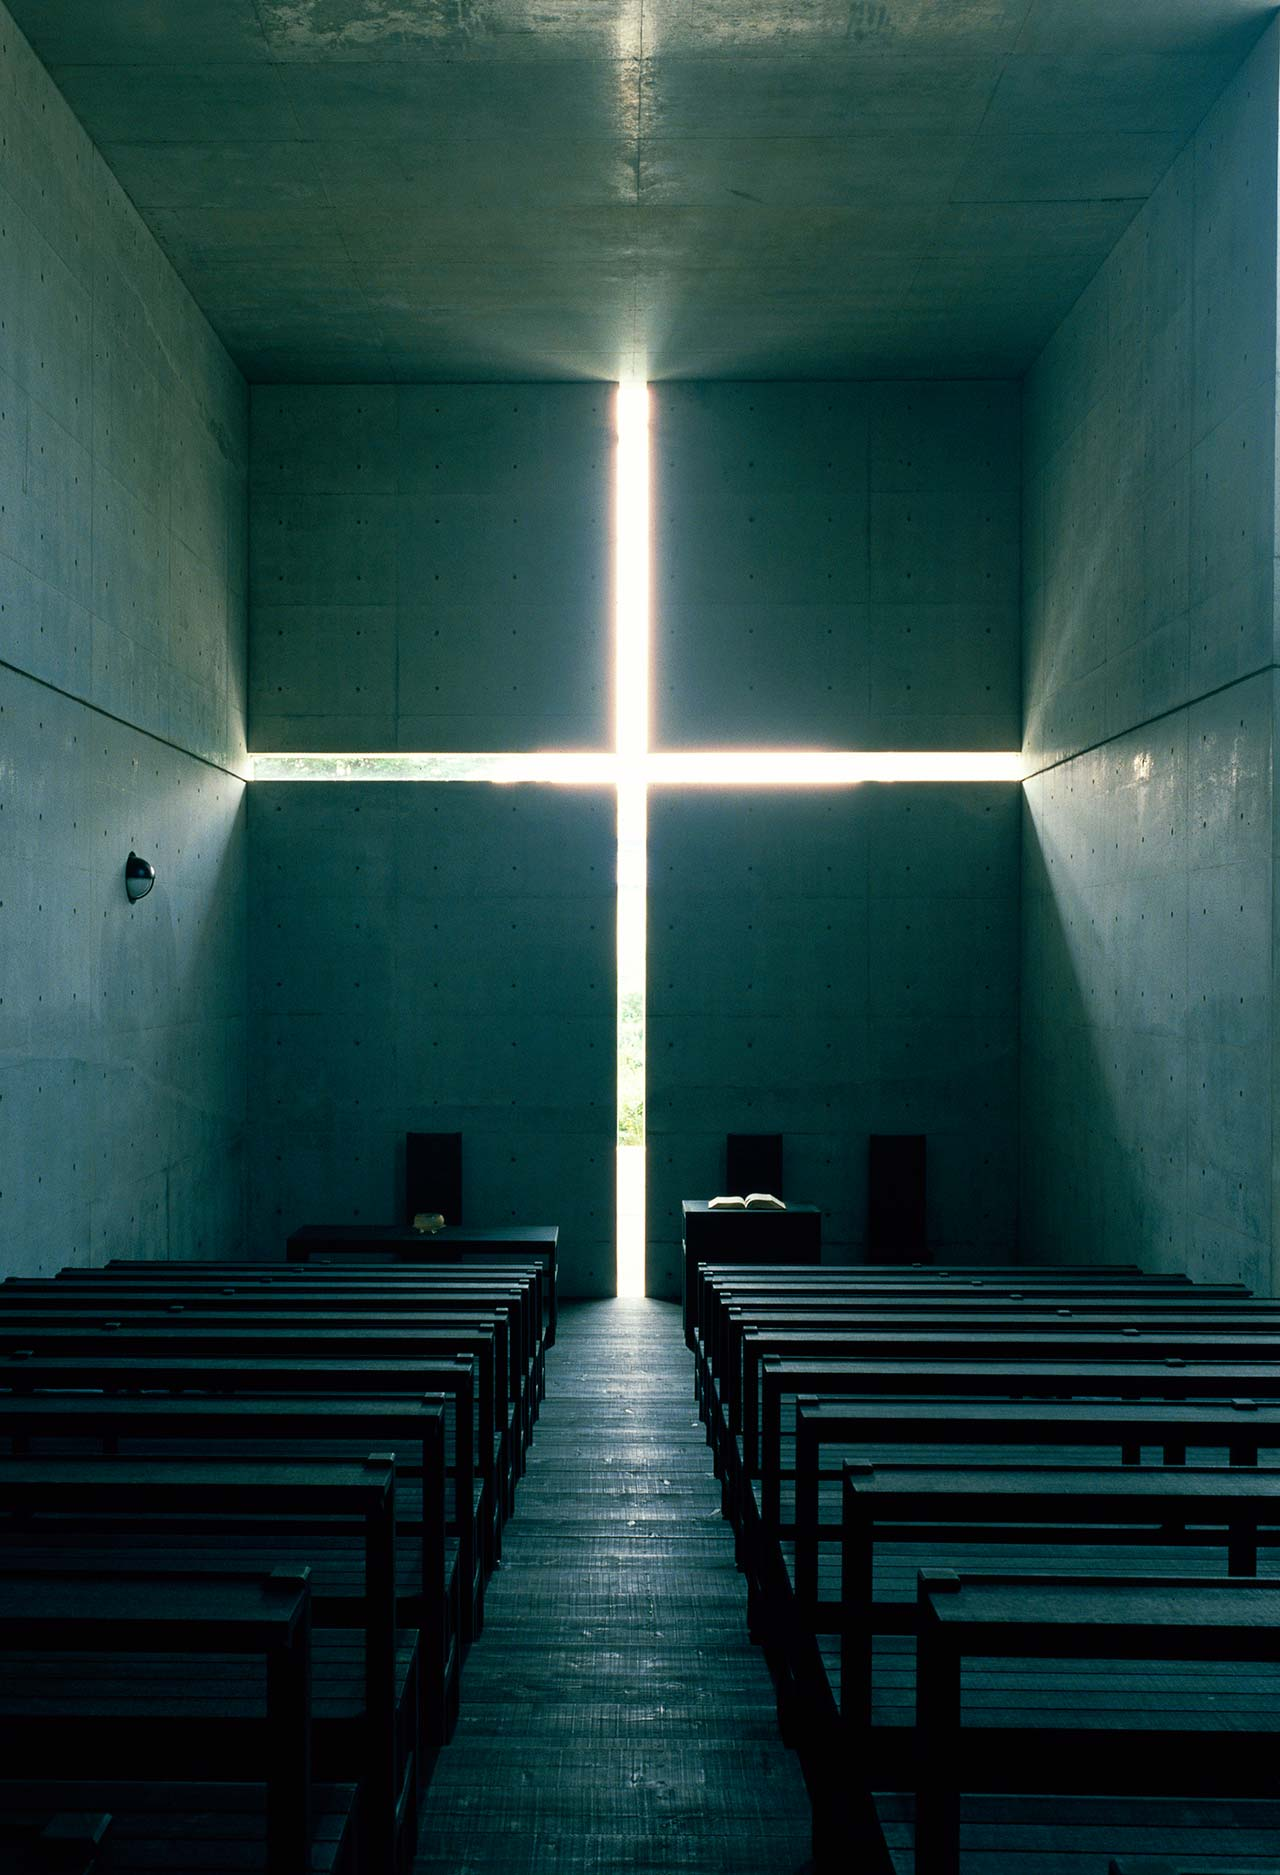 Church of the Light, 1989, Ibaraki, Osaka. Photo by Mitsuo Matsuoka.